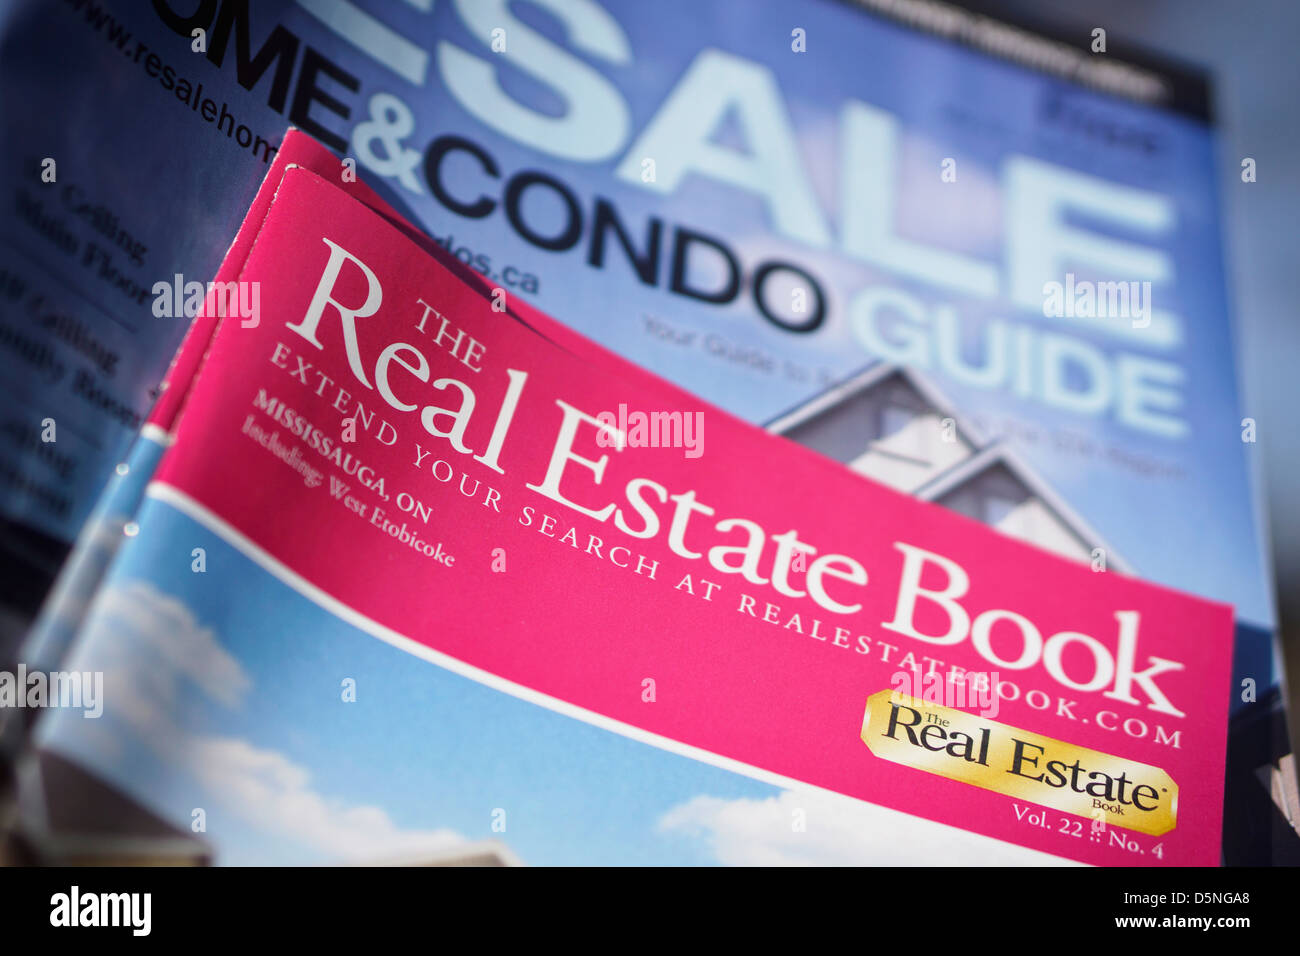 Real Estate, Homes Condos Land for Sale, Resale Booklets, Ontario, Canada - Stock Image